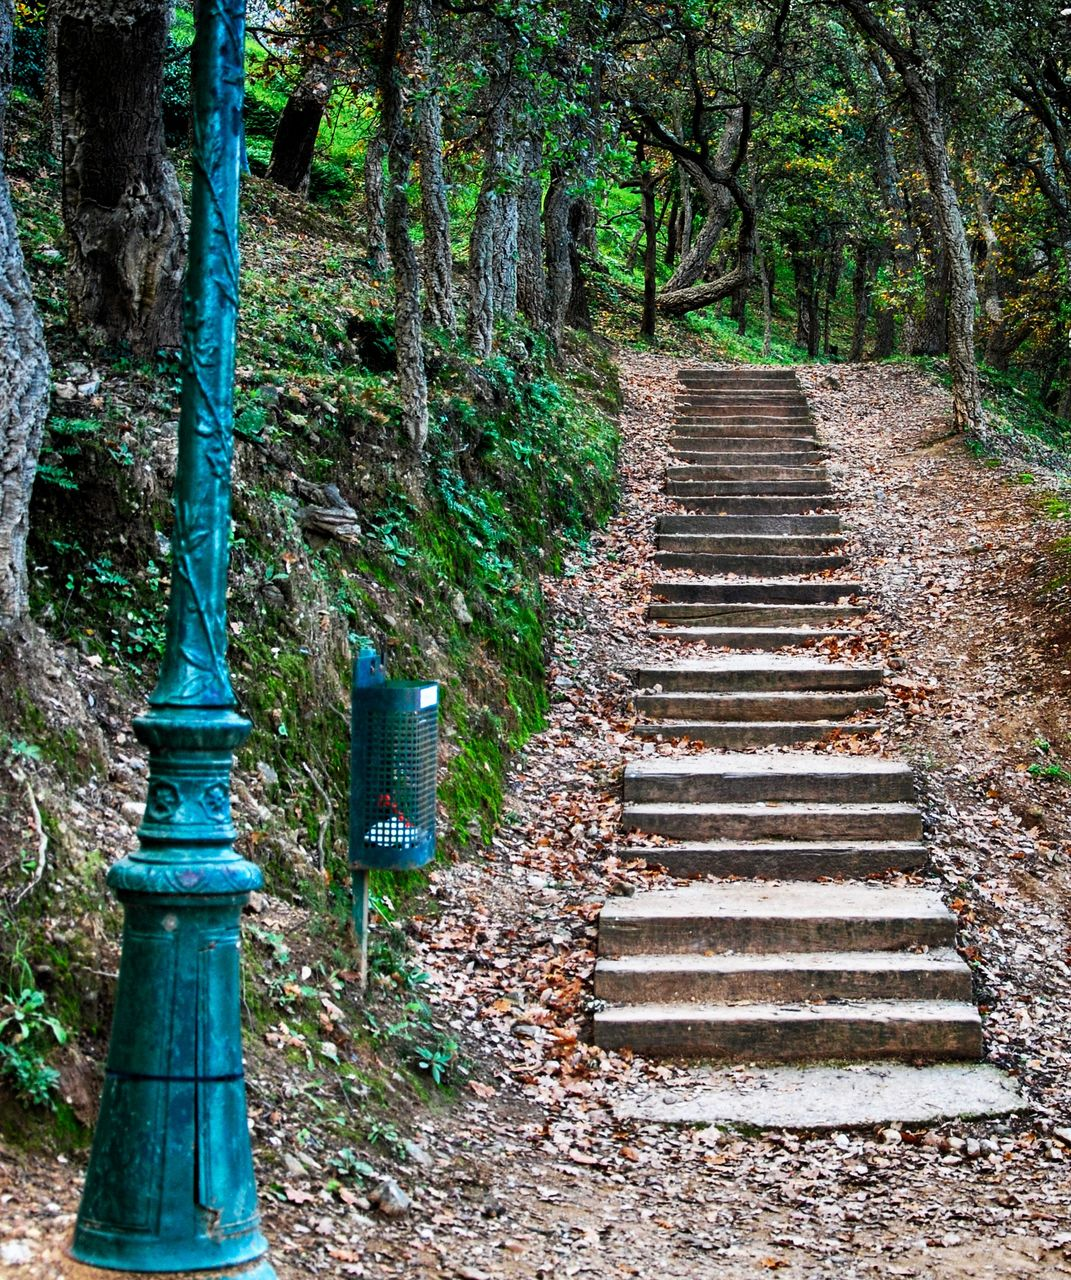 steps, steps and staircases, staircase, tree, no people, day, forest, outdoors, tranquility, tree trunk, nature, architecture